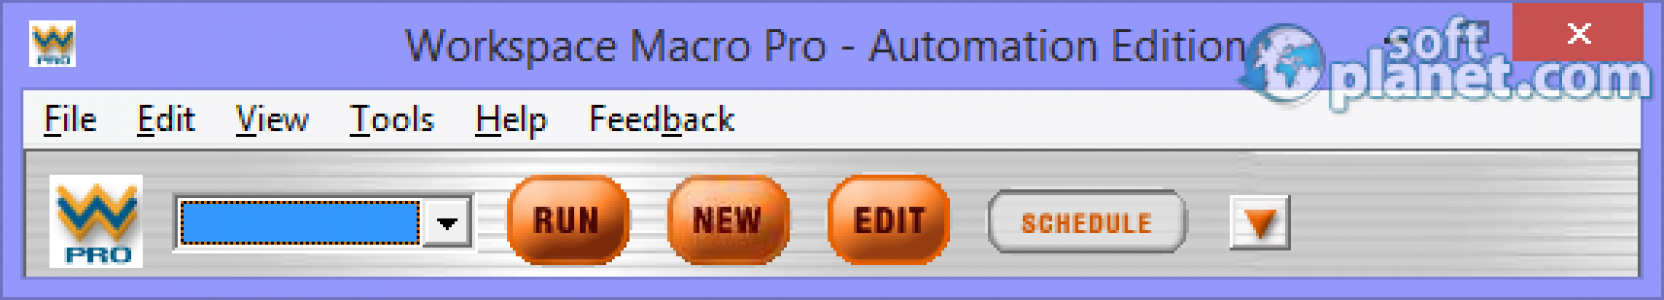 Workspace Macro Pro - Automation Edition Screenshot5